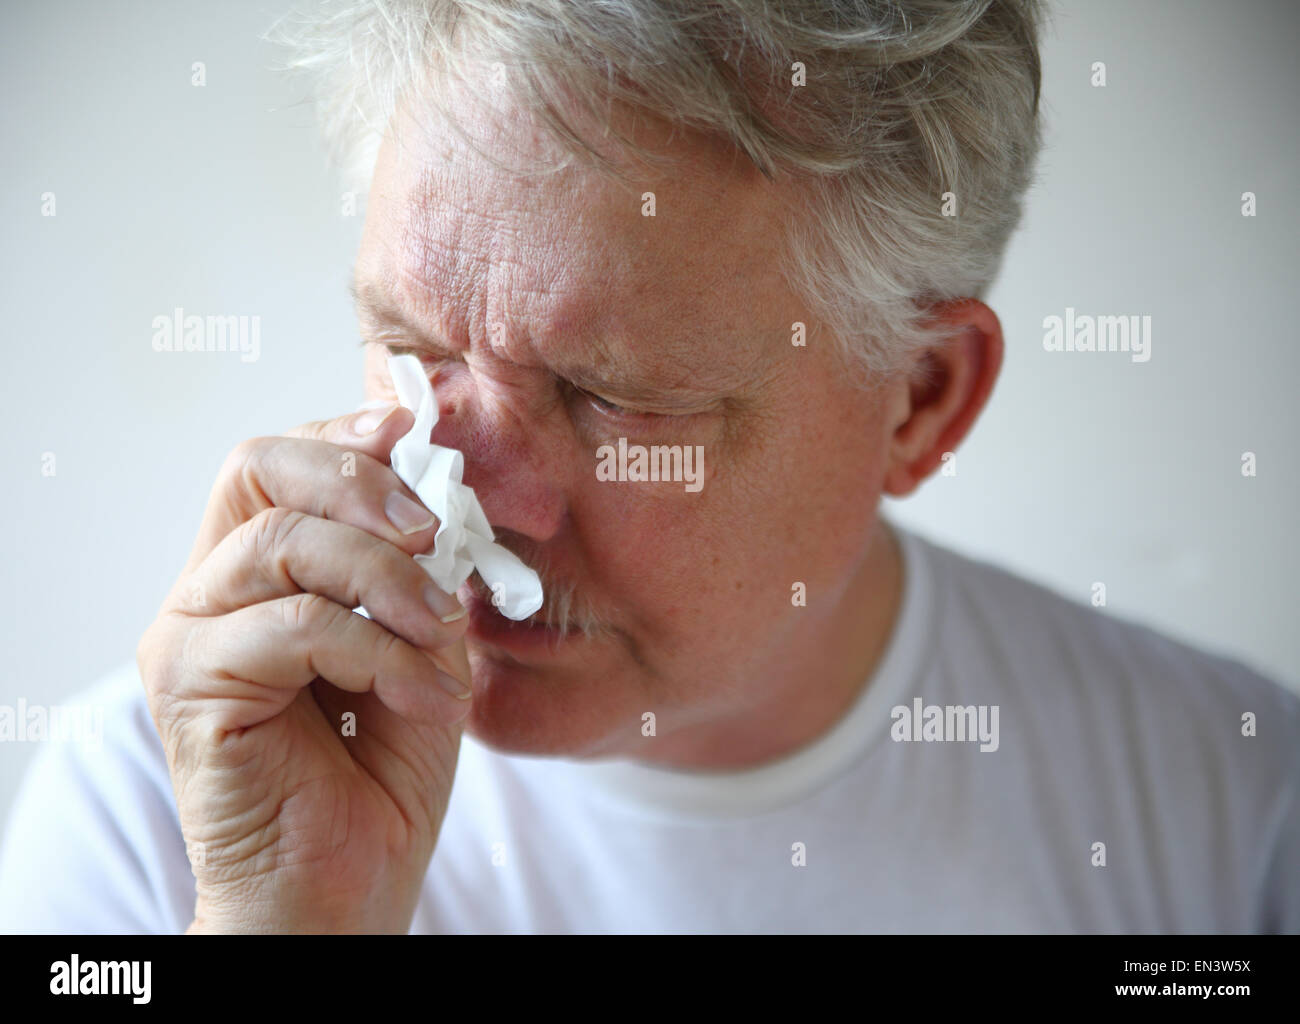 A man with the flu or a cold wipes his runny nose. - Stock Image